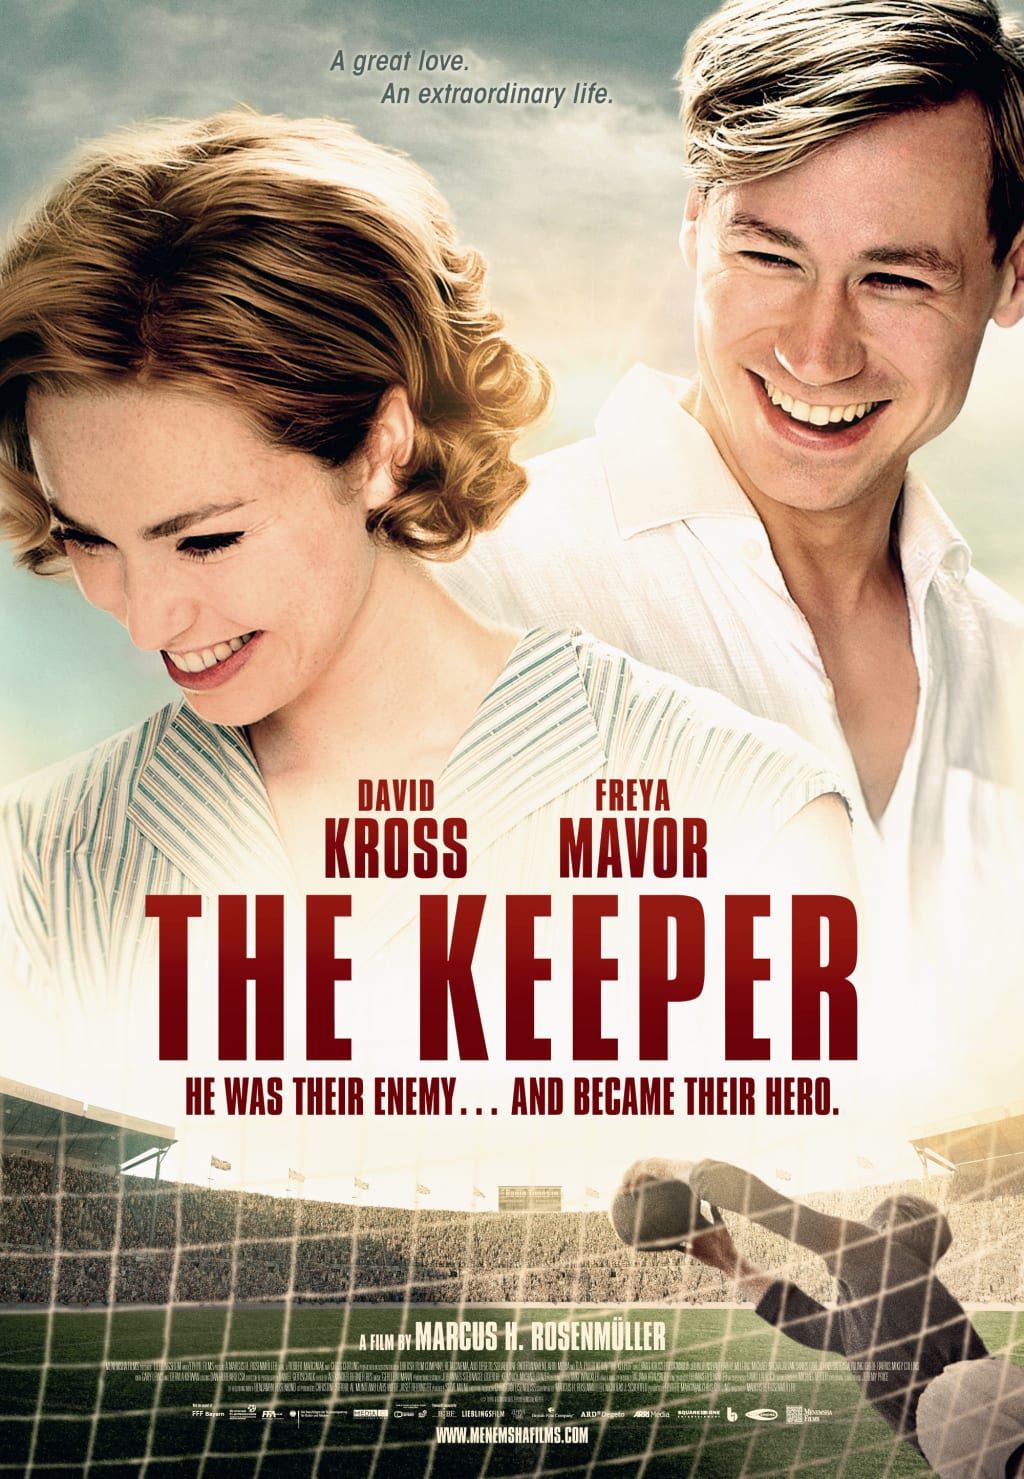 Movie Review: 'The Keeper' Arrives at the Exact Wrong Time